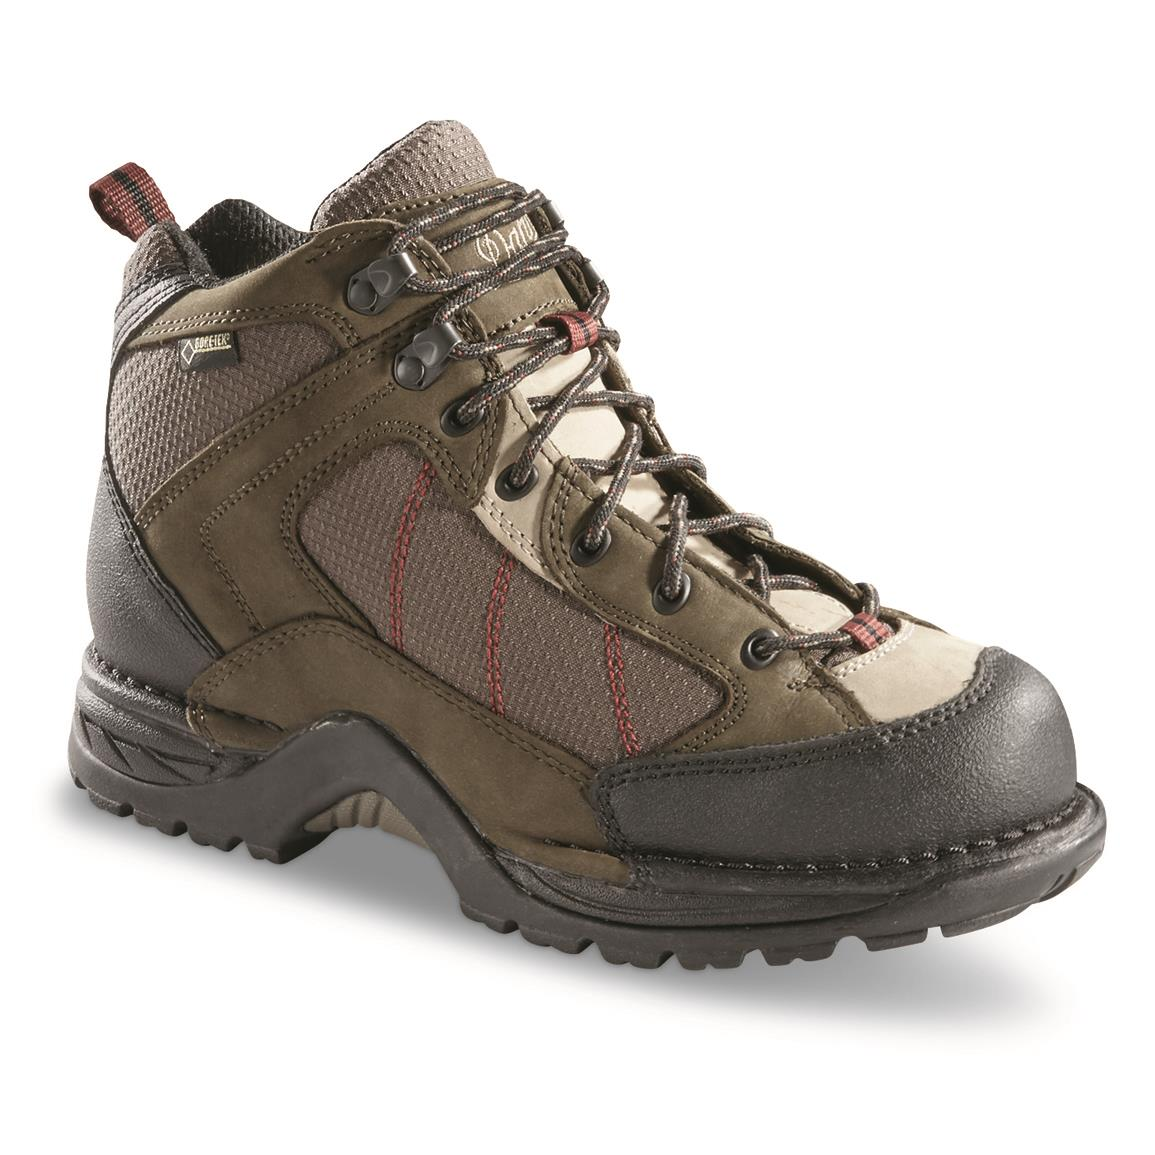 Danner Men's Radical 452 Waterproof Hiking Boots, Olive